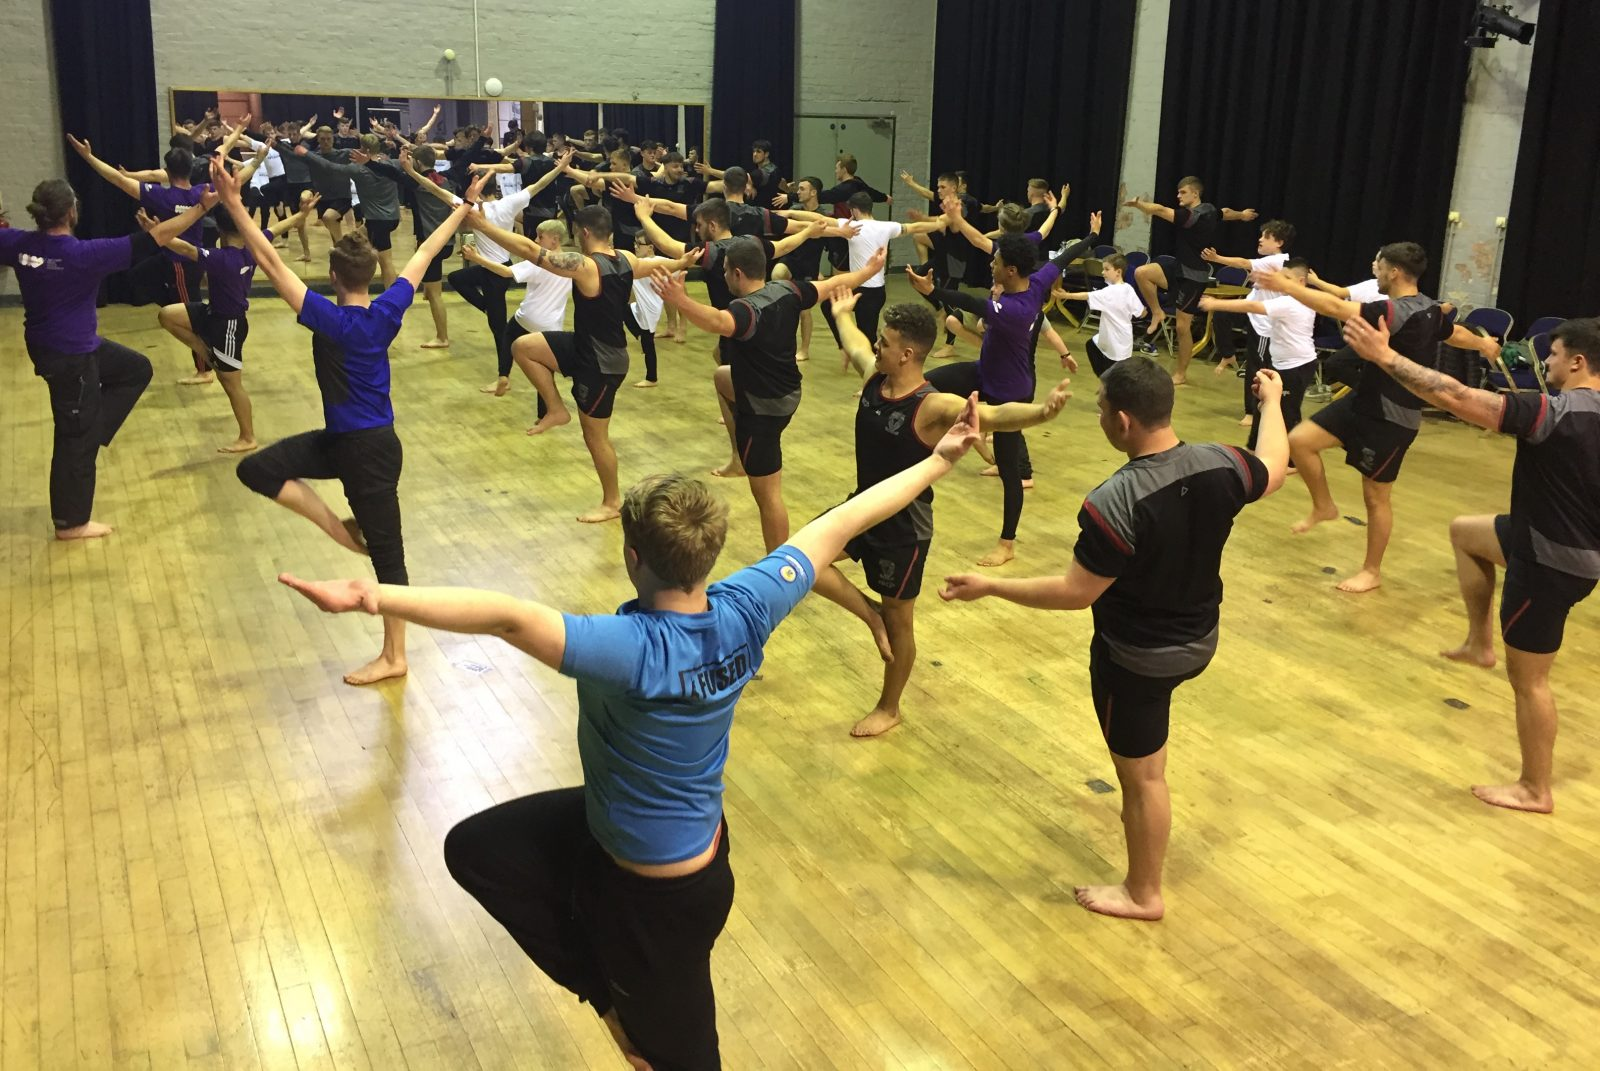 Warrington's young stars learn how to dance with Wolves